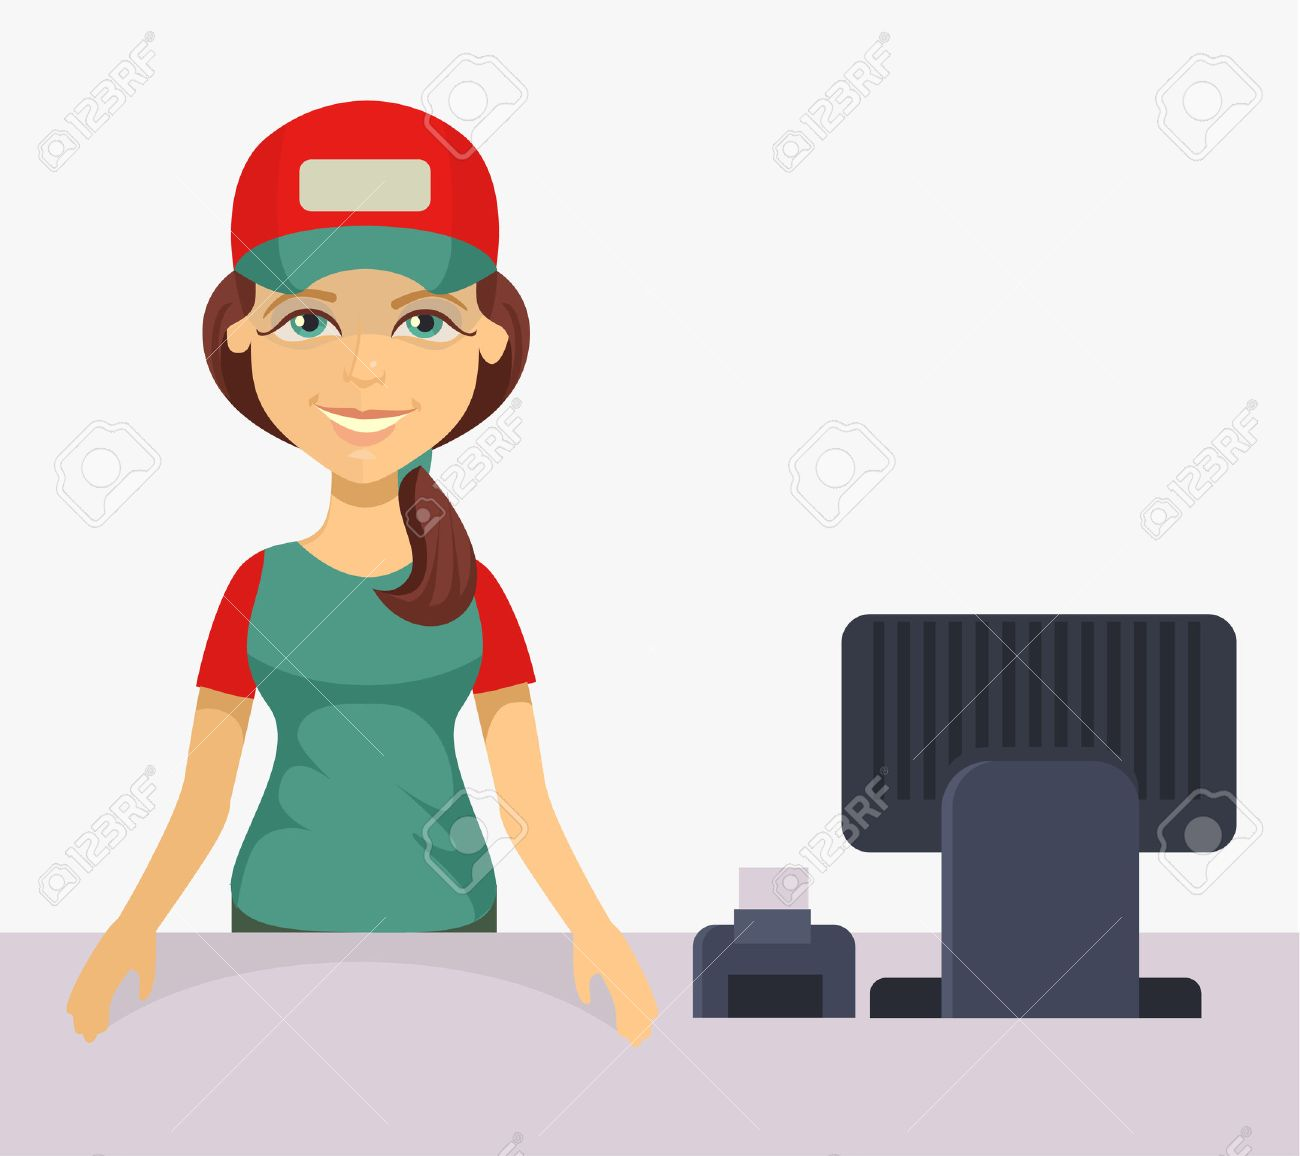 vector cashier flat cartoon illustration royalty free cliparts